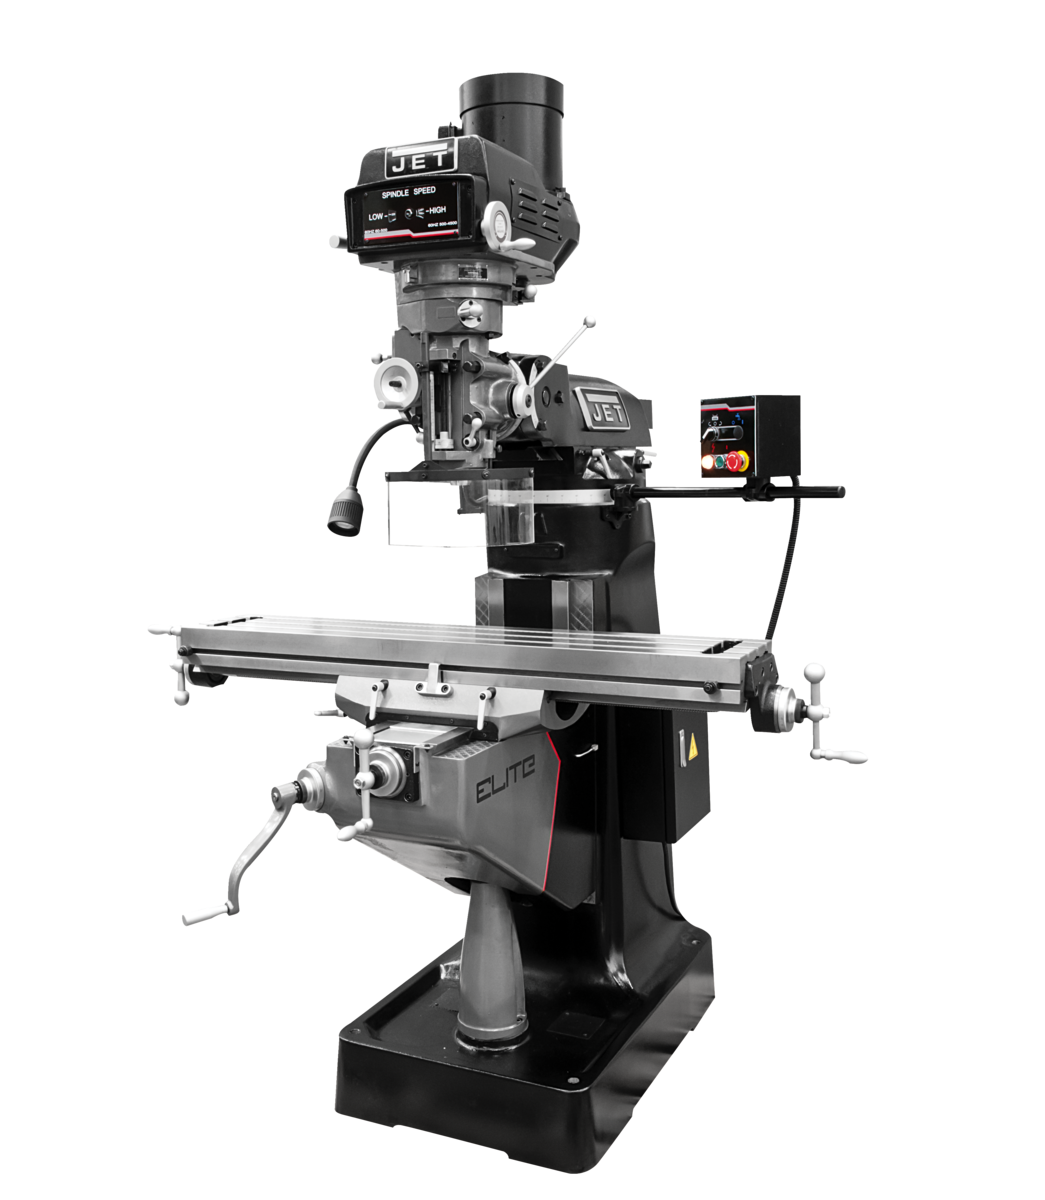 ETM-949 Mill with 3-Axis ACU-RITE 303 (Knee) DRO and Servo X, Y, Z-Axis Powerfeeds